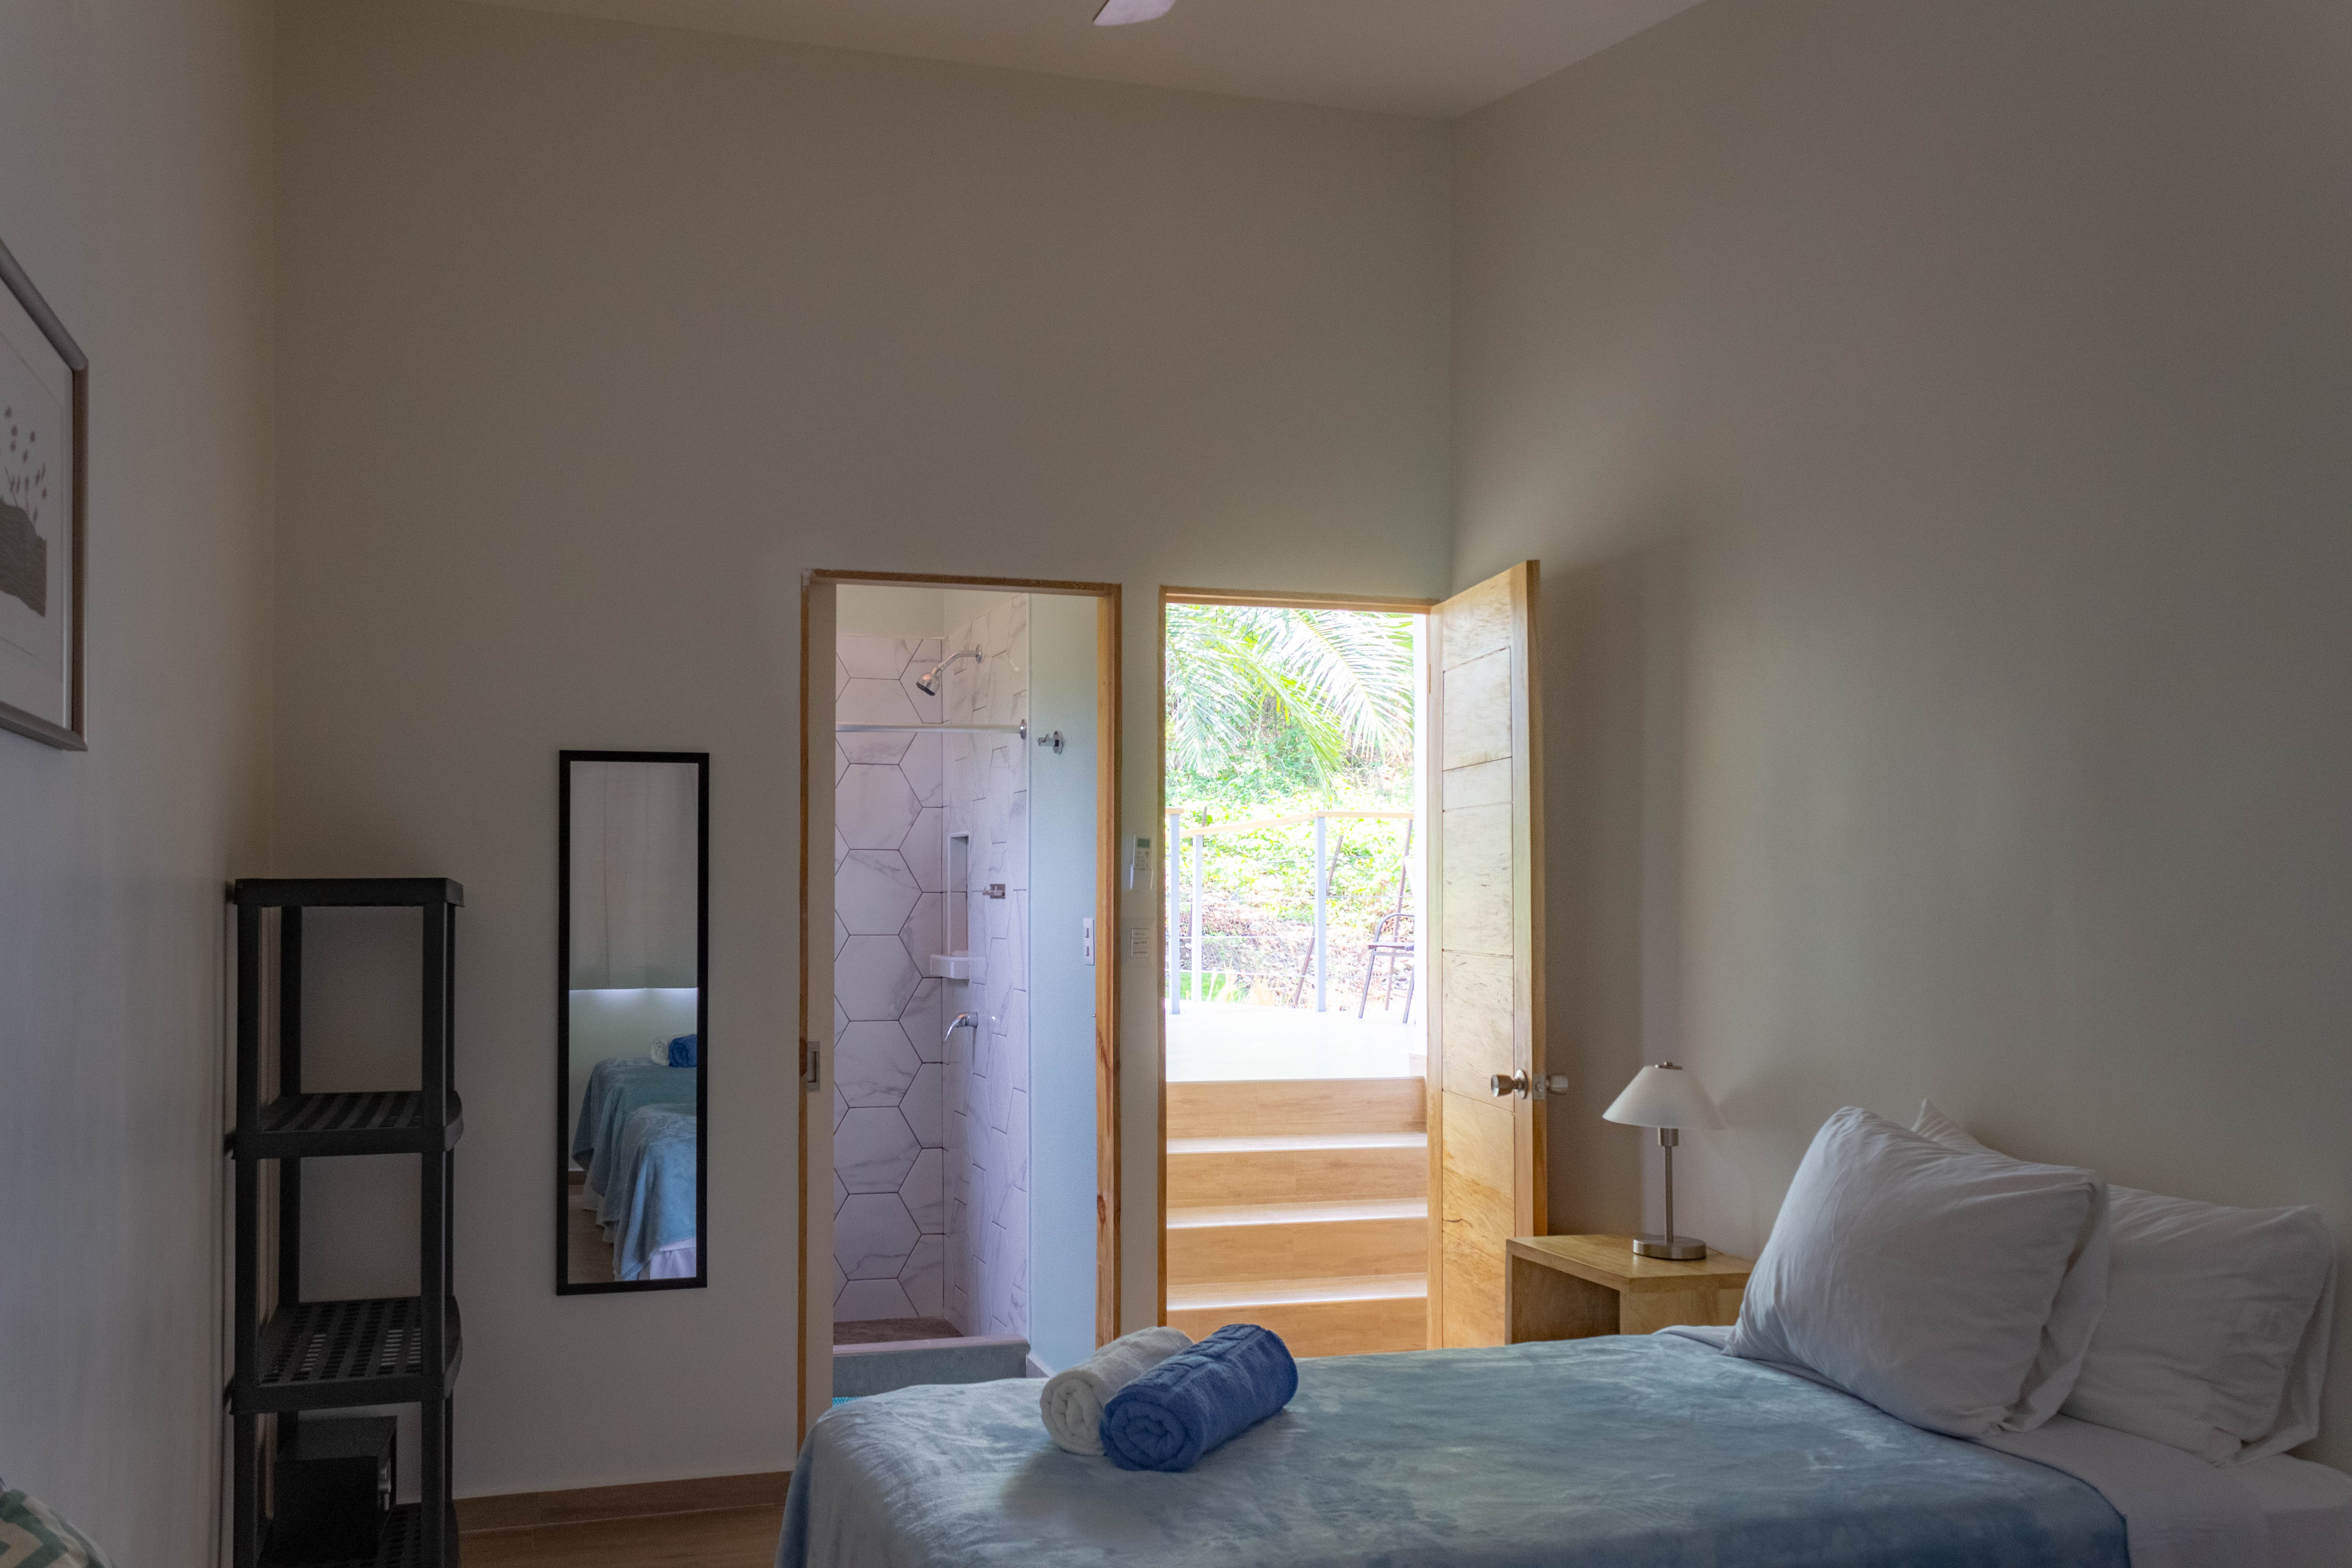 View of the casita's master bedroom looking out onto the patio